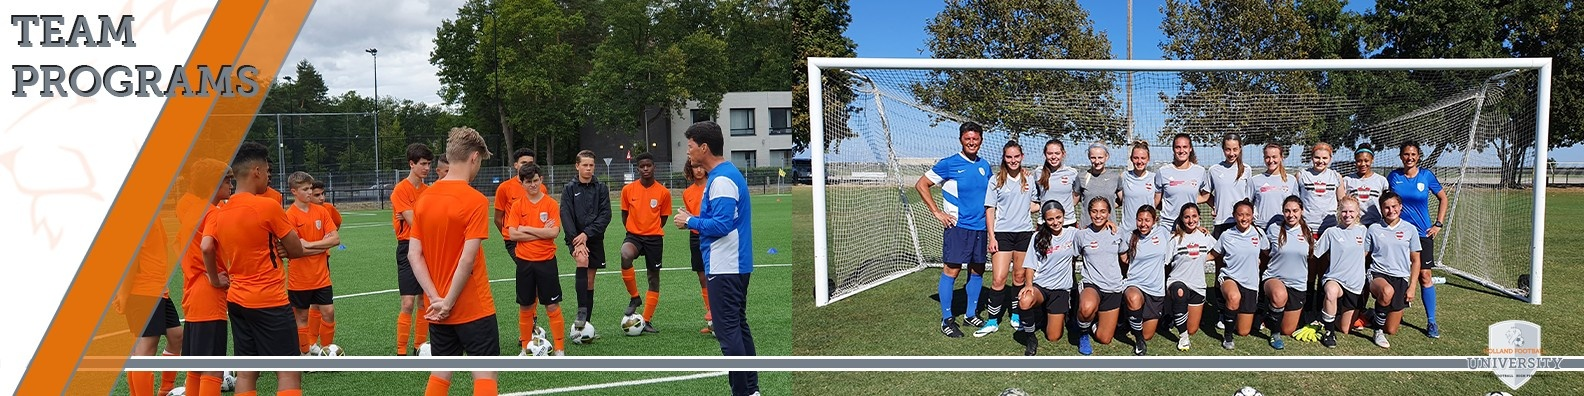 Team Programs Football Training Camps in the Netherlands - Holland Football University